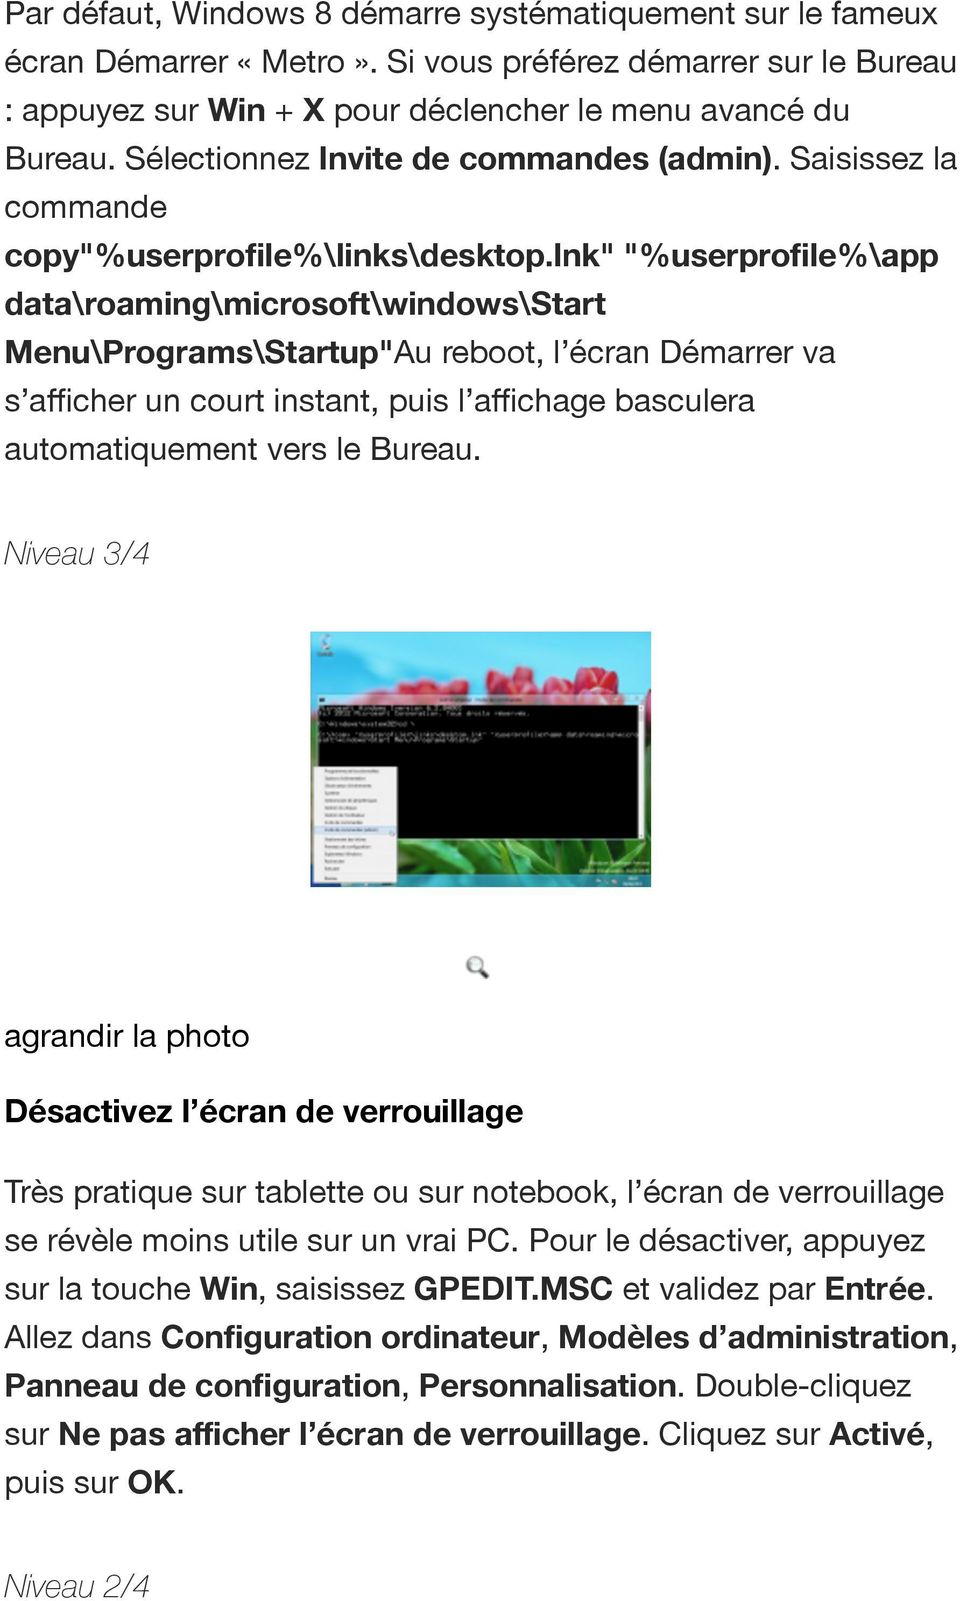 "lnk"" ""%userprofile%\app data\roaming\microsoft\windows\start Menu\Programs\Startup""Au reboot, l écran Démarrer va s afficher un court instant, puis l affichage basculera automatiquement vers le"